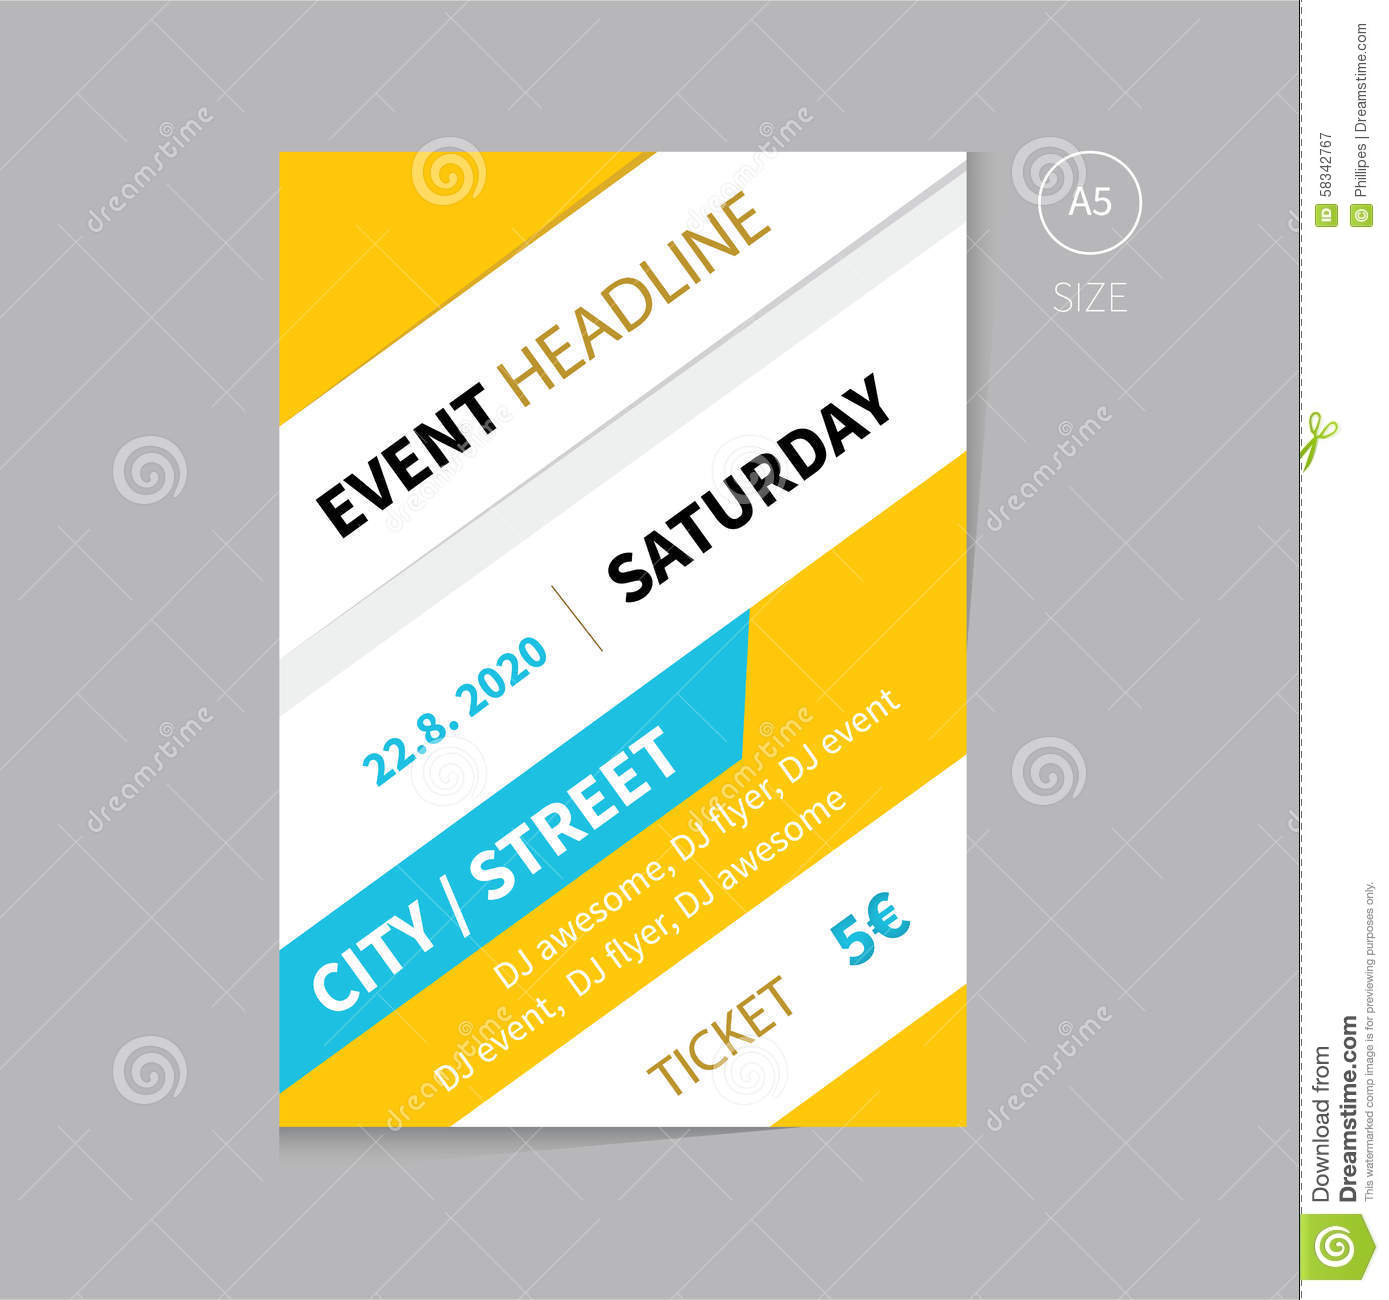 Vector Event Brochure Flyer Template Design A5 Size Stock